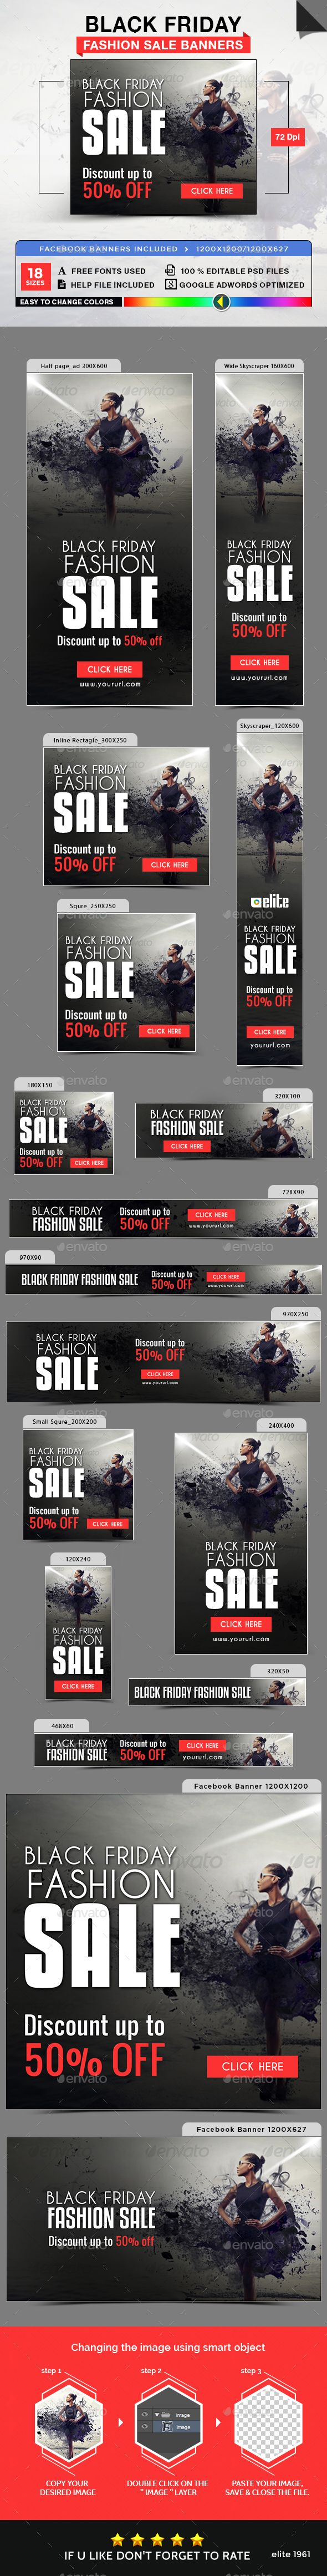 Black Friday Fashion Sale Banners — Photoshop PSD #black friday #gif banner • Available here → https://graphicriver.net/item/black-friday-fashion-sale-banners/18711835?ref=pxcr